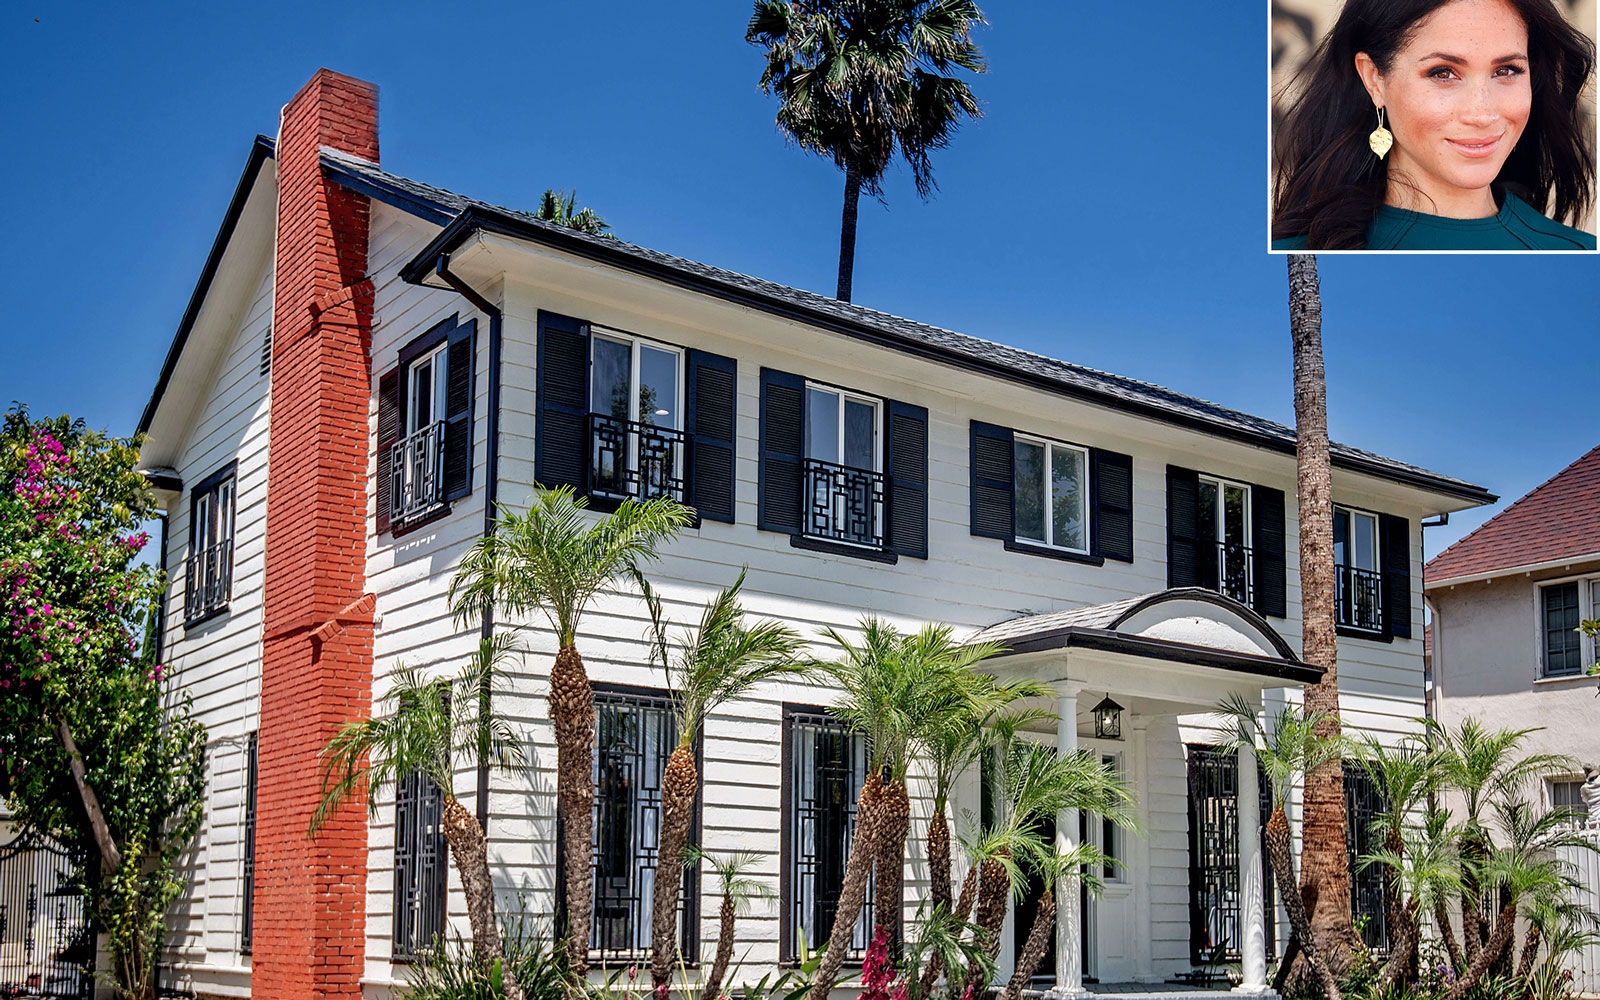 The L.A. Home Meghan Markle Shared With Her Ex-husband Is on Sale for $1.8 Million — See Inside